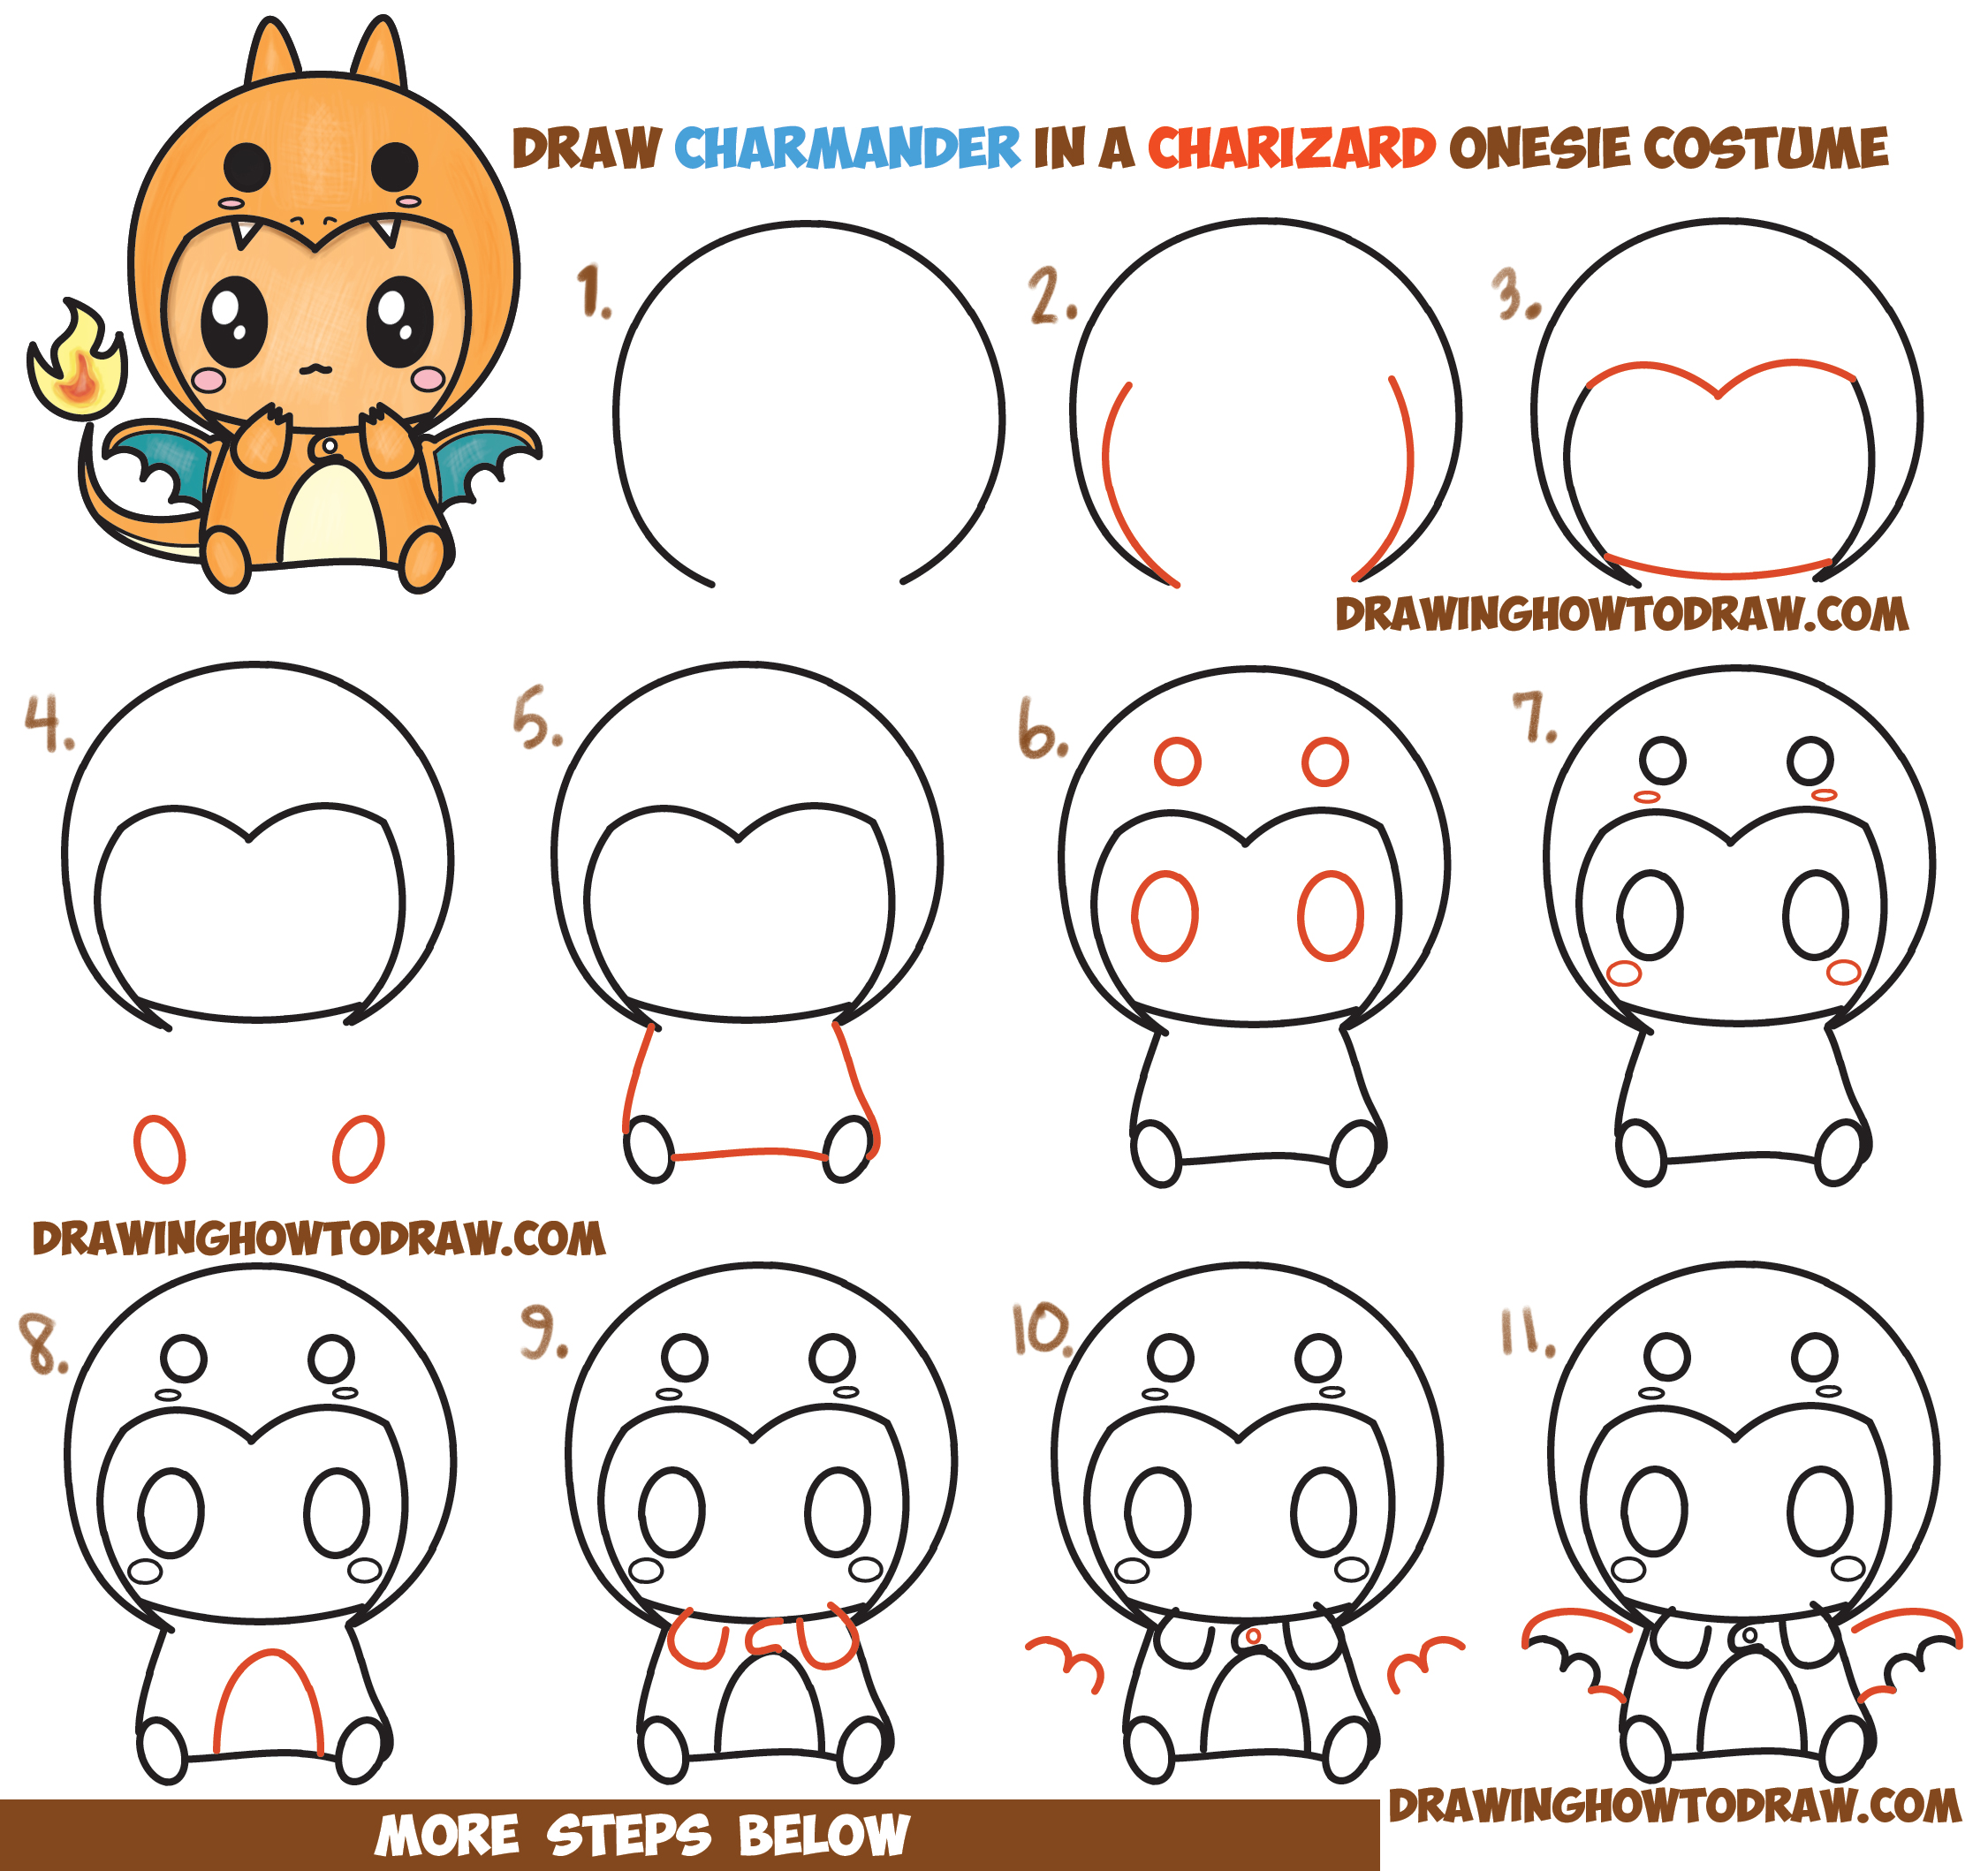 How to Draw Charmander Wearing a Charizard Costume Onesie with a Hood Easy Step by Step Drawing Tutorial for Kids